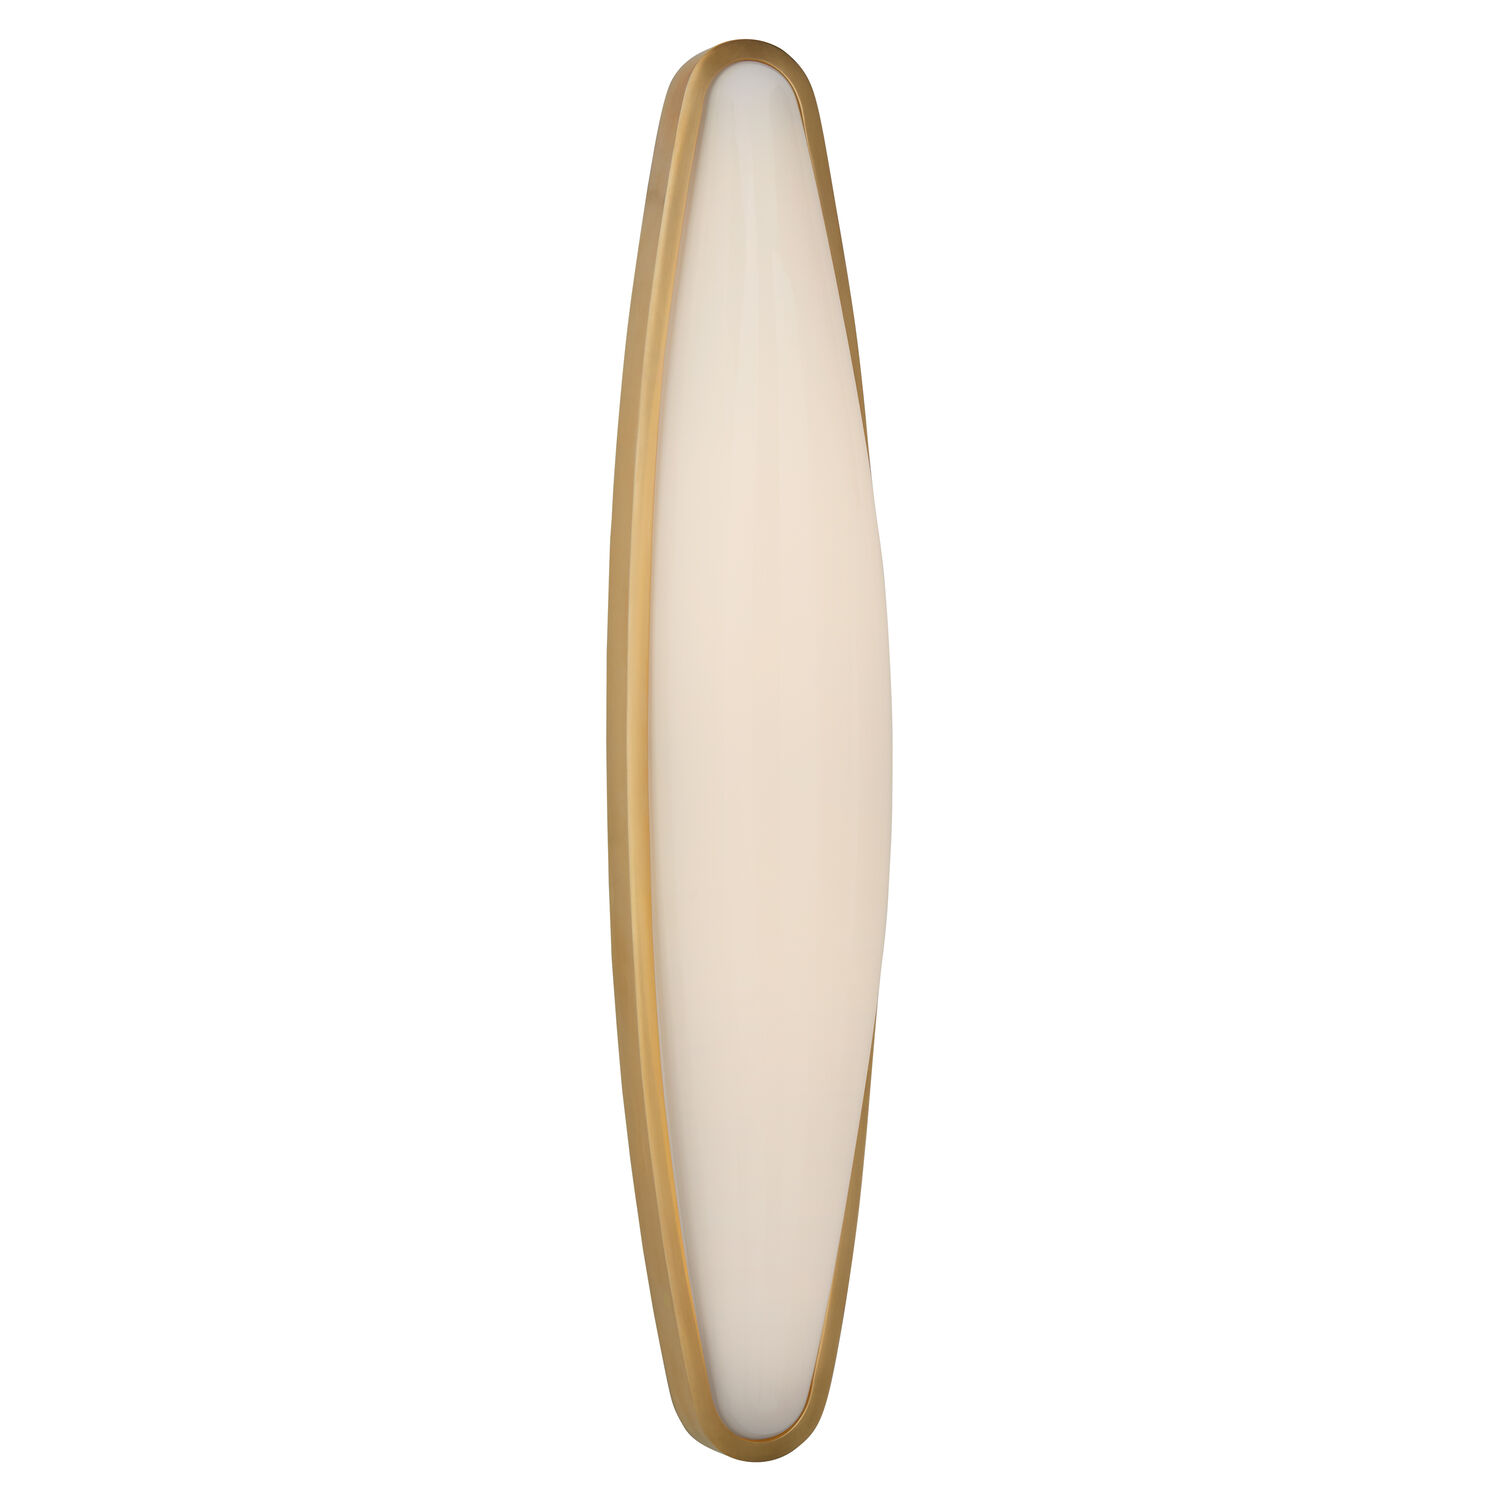 Ezra Large Bath Sconce